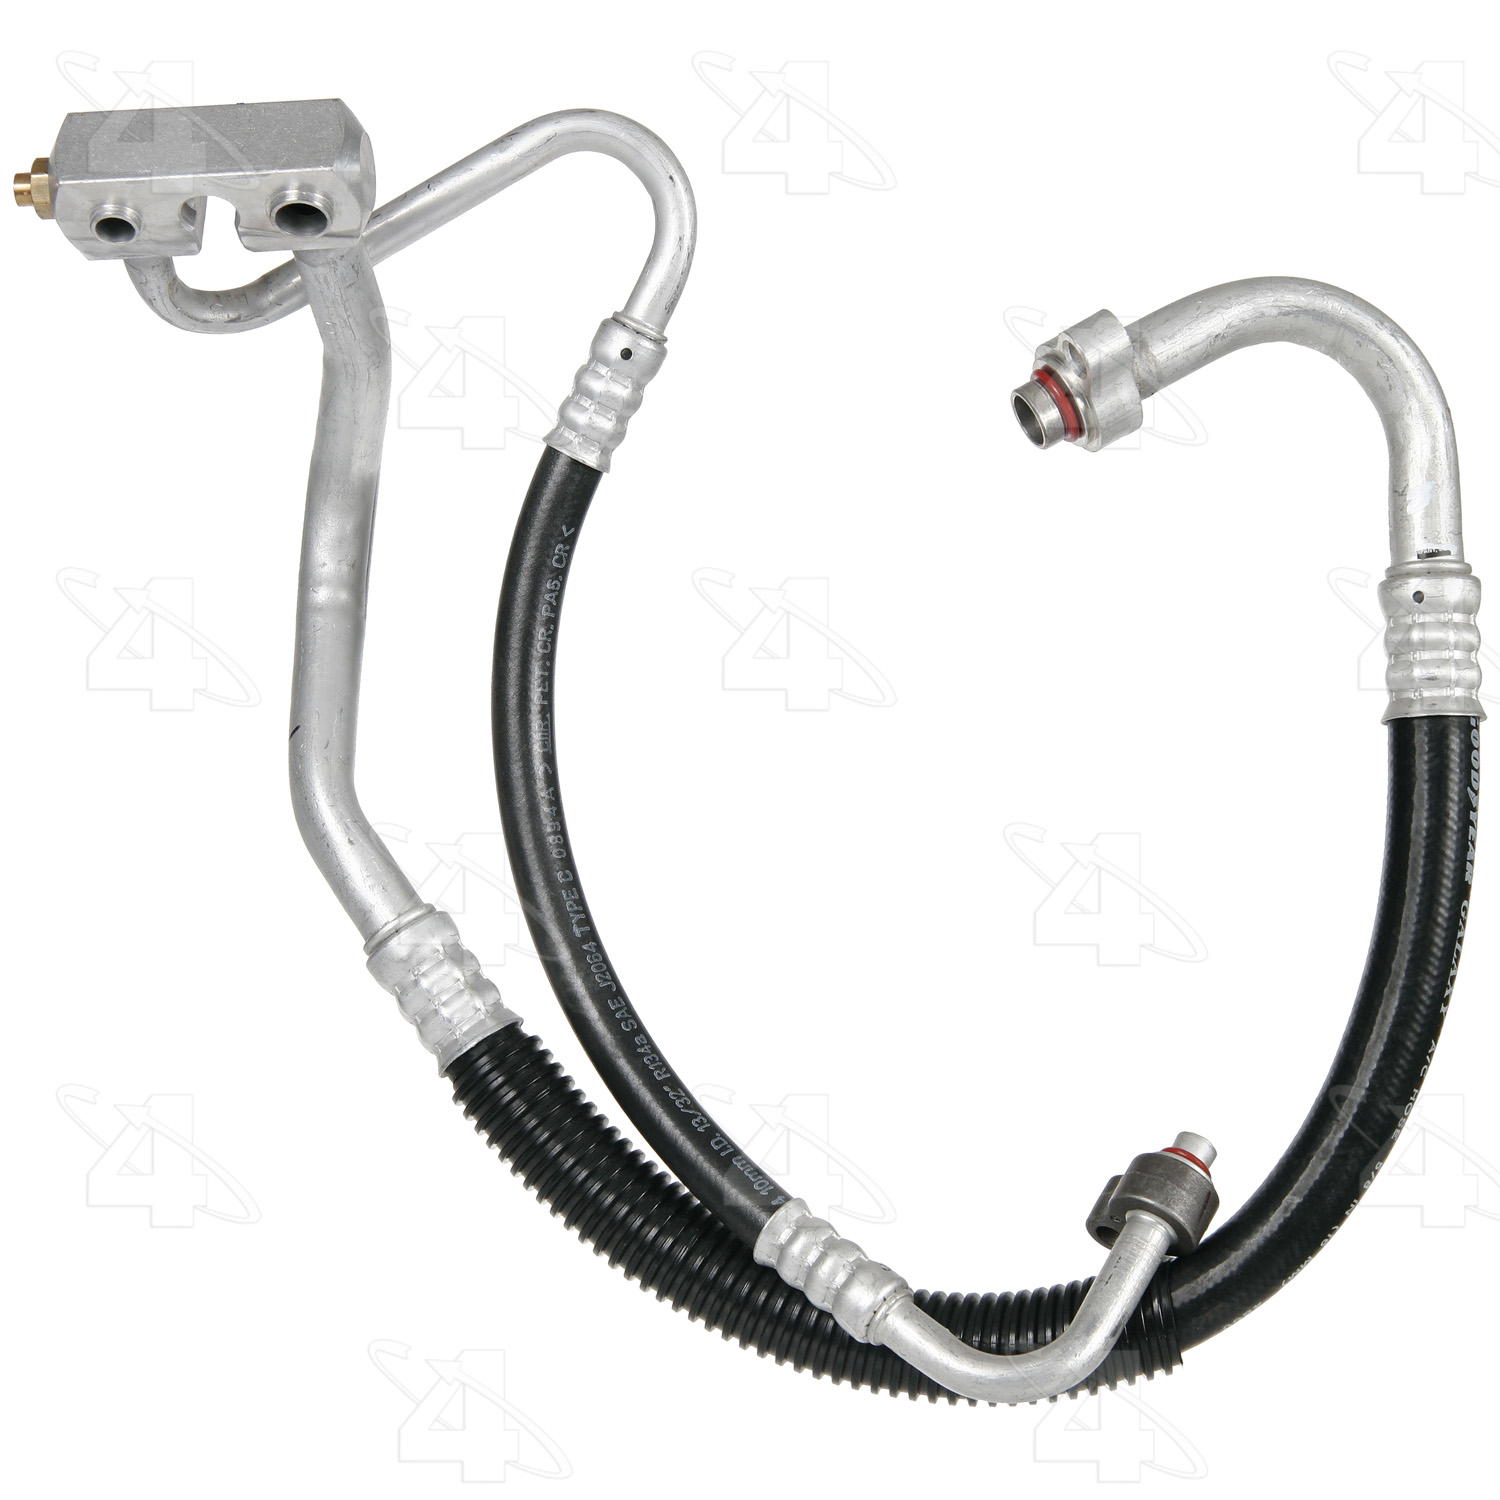 Four Seasons 56764 A/C Refrigerant Discharge / Suction Hose Assembly Fits 2000-2004 Ford Focus 56764